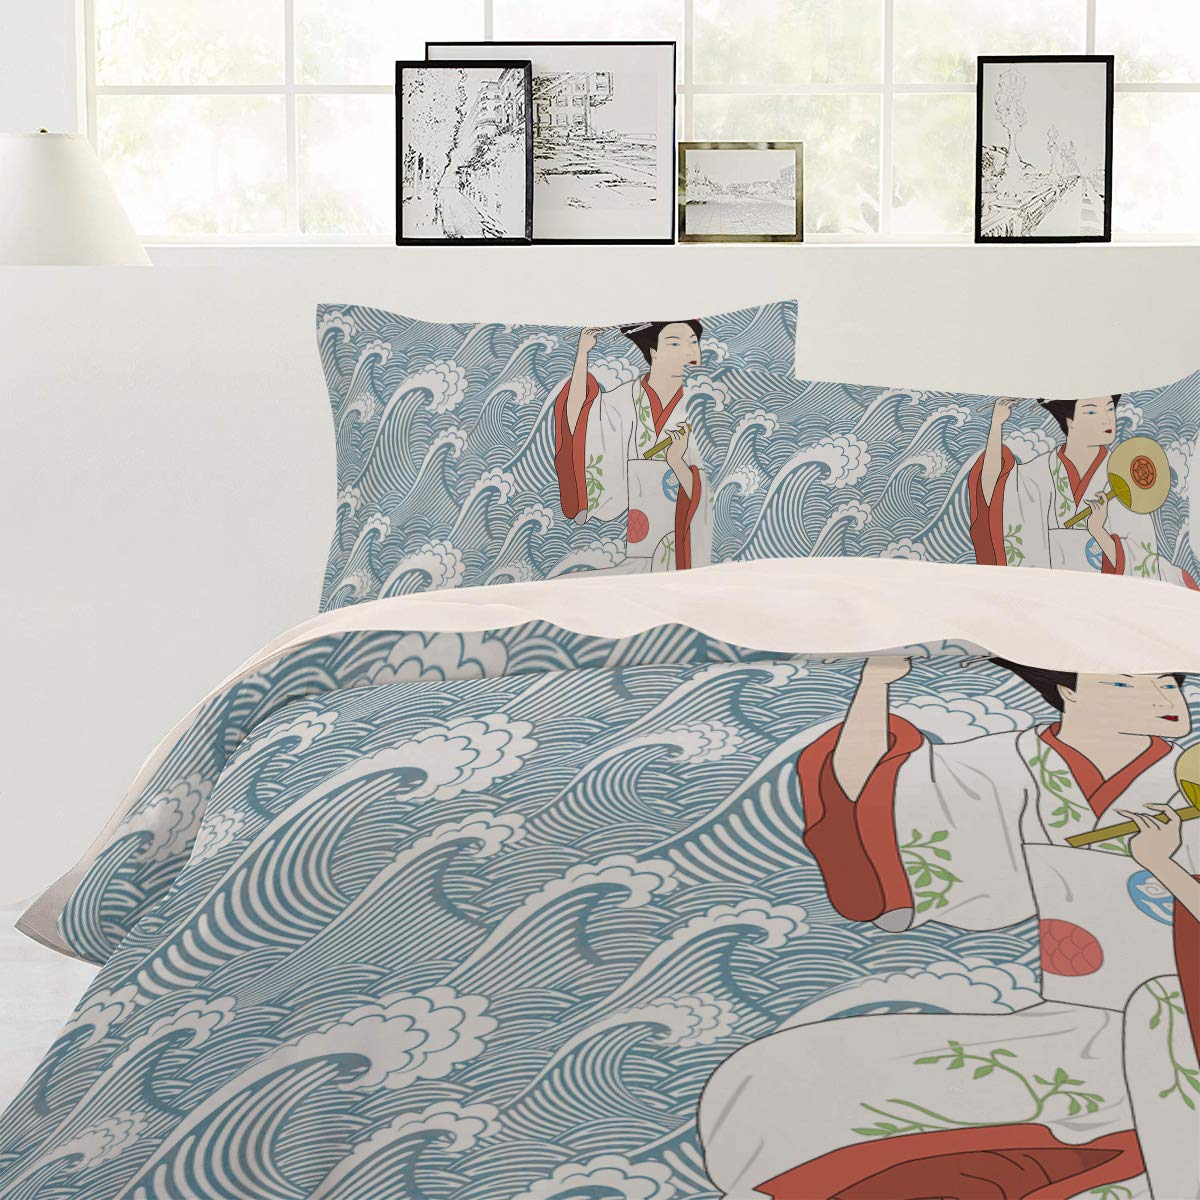 Japanese Style Kimono Girl Comforter Cover Bedspread Daybed for Adults/Kids/Childrens/Teens Duvet Covers NewThangKa 3 Piece Bedding Set Duvet Cover Set with Zipper Closure King Size